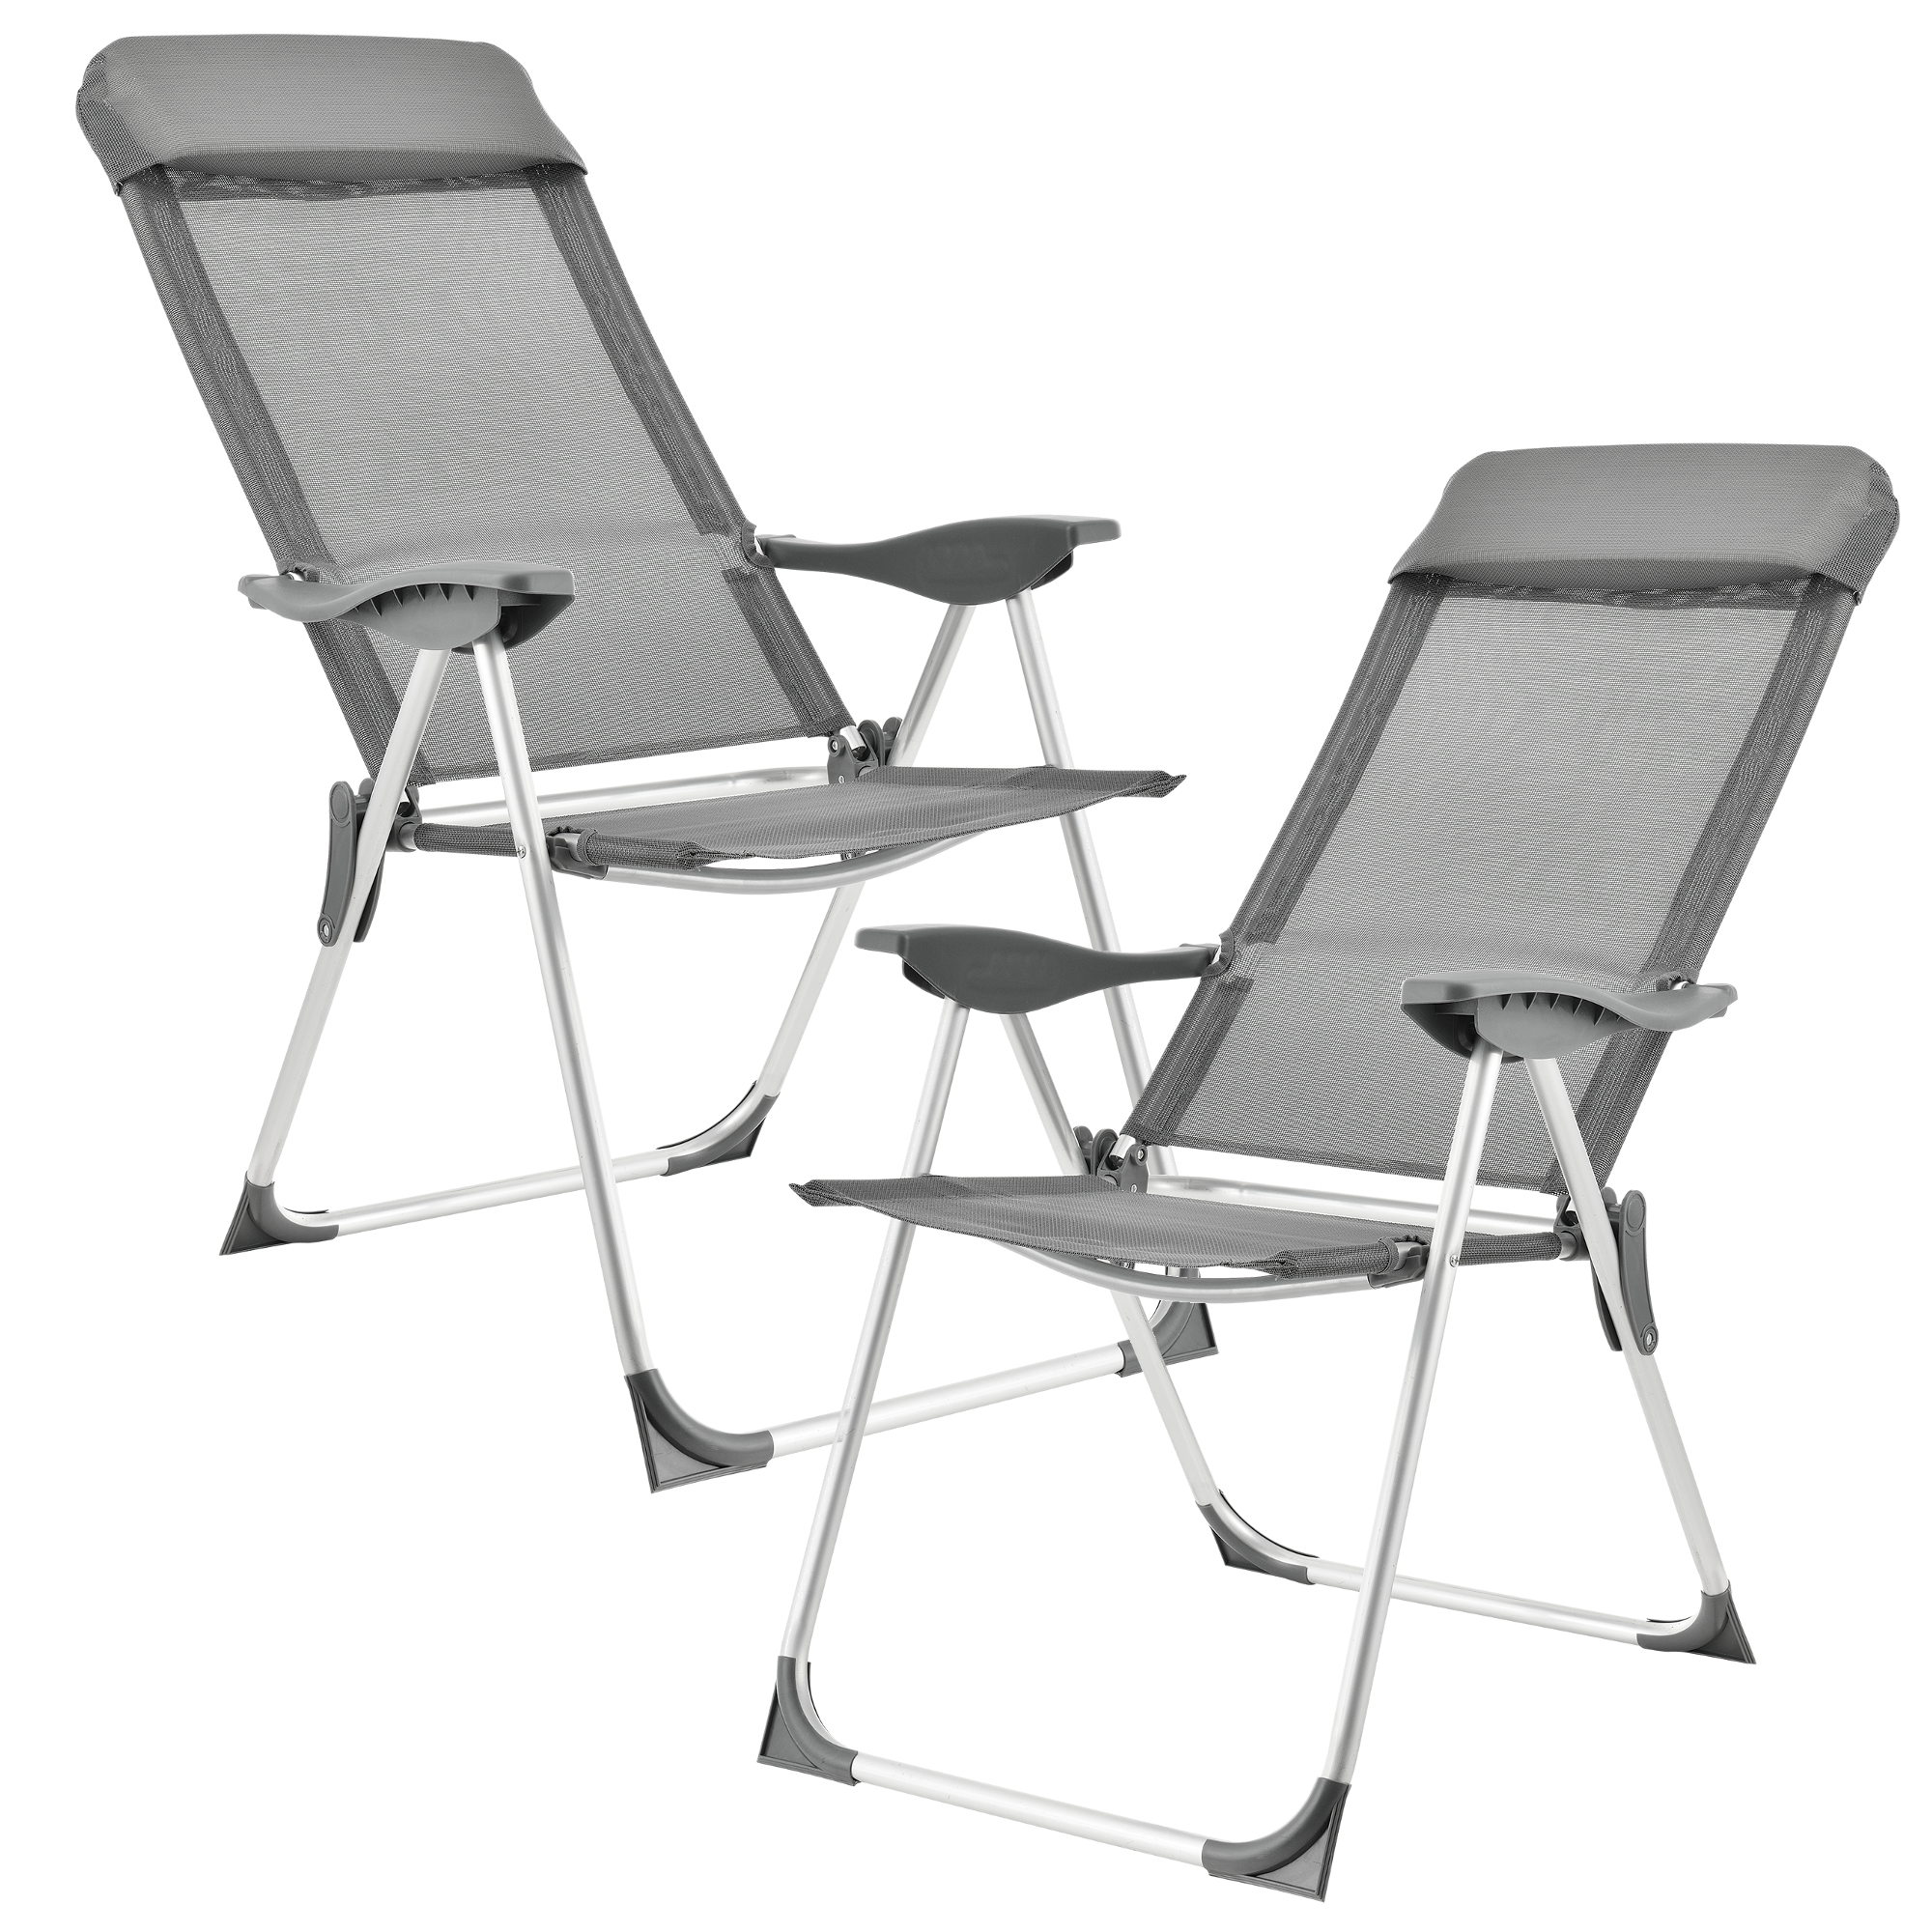 2x aluminium chaise de jardin camping pliante haute dos gris ebay. Black Bedroom Furniture Sets. Home Design Ideas